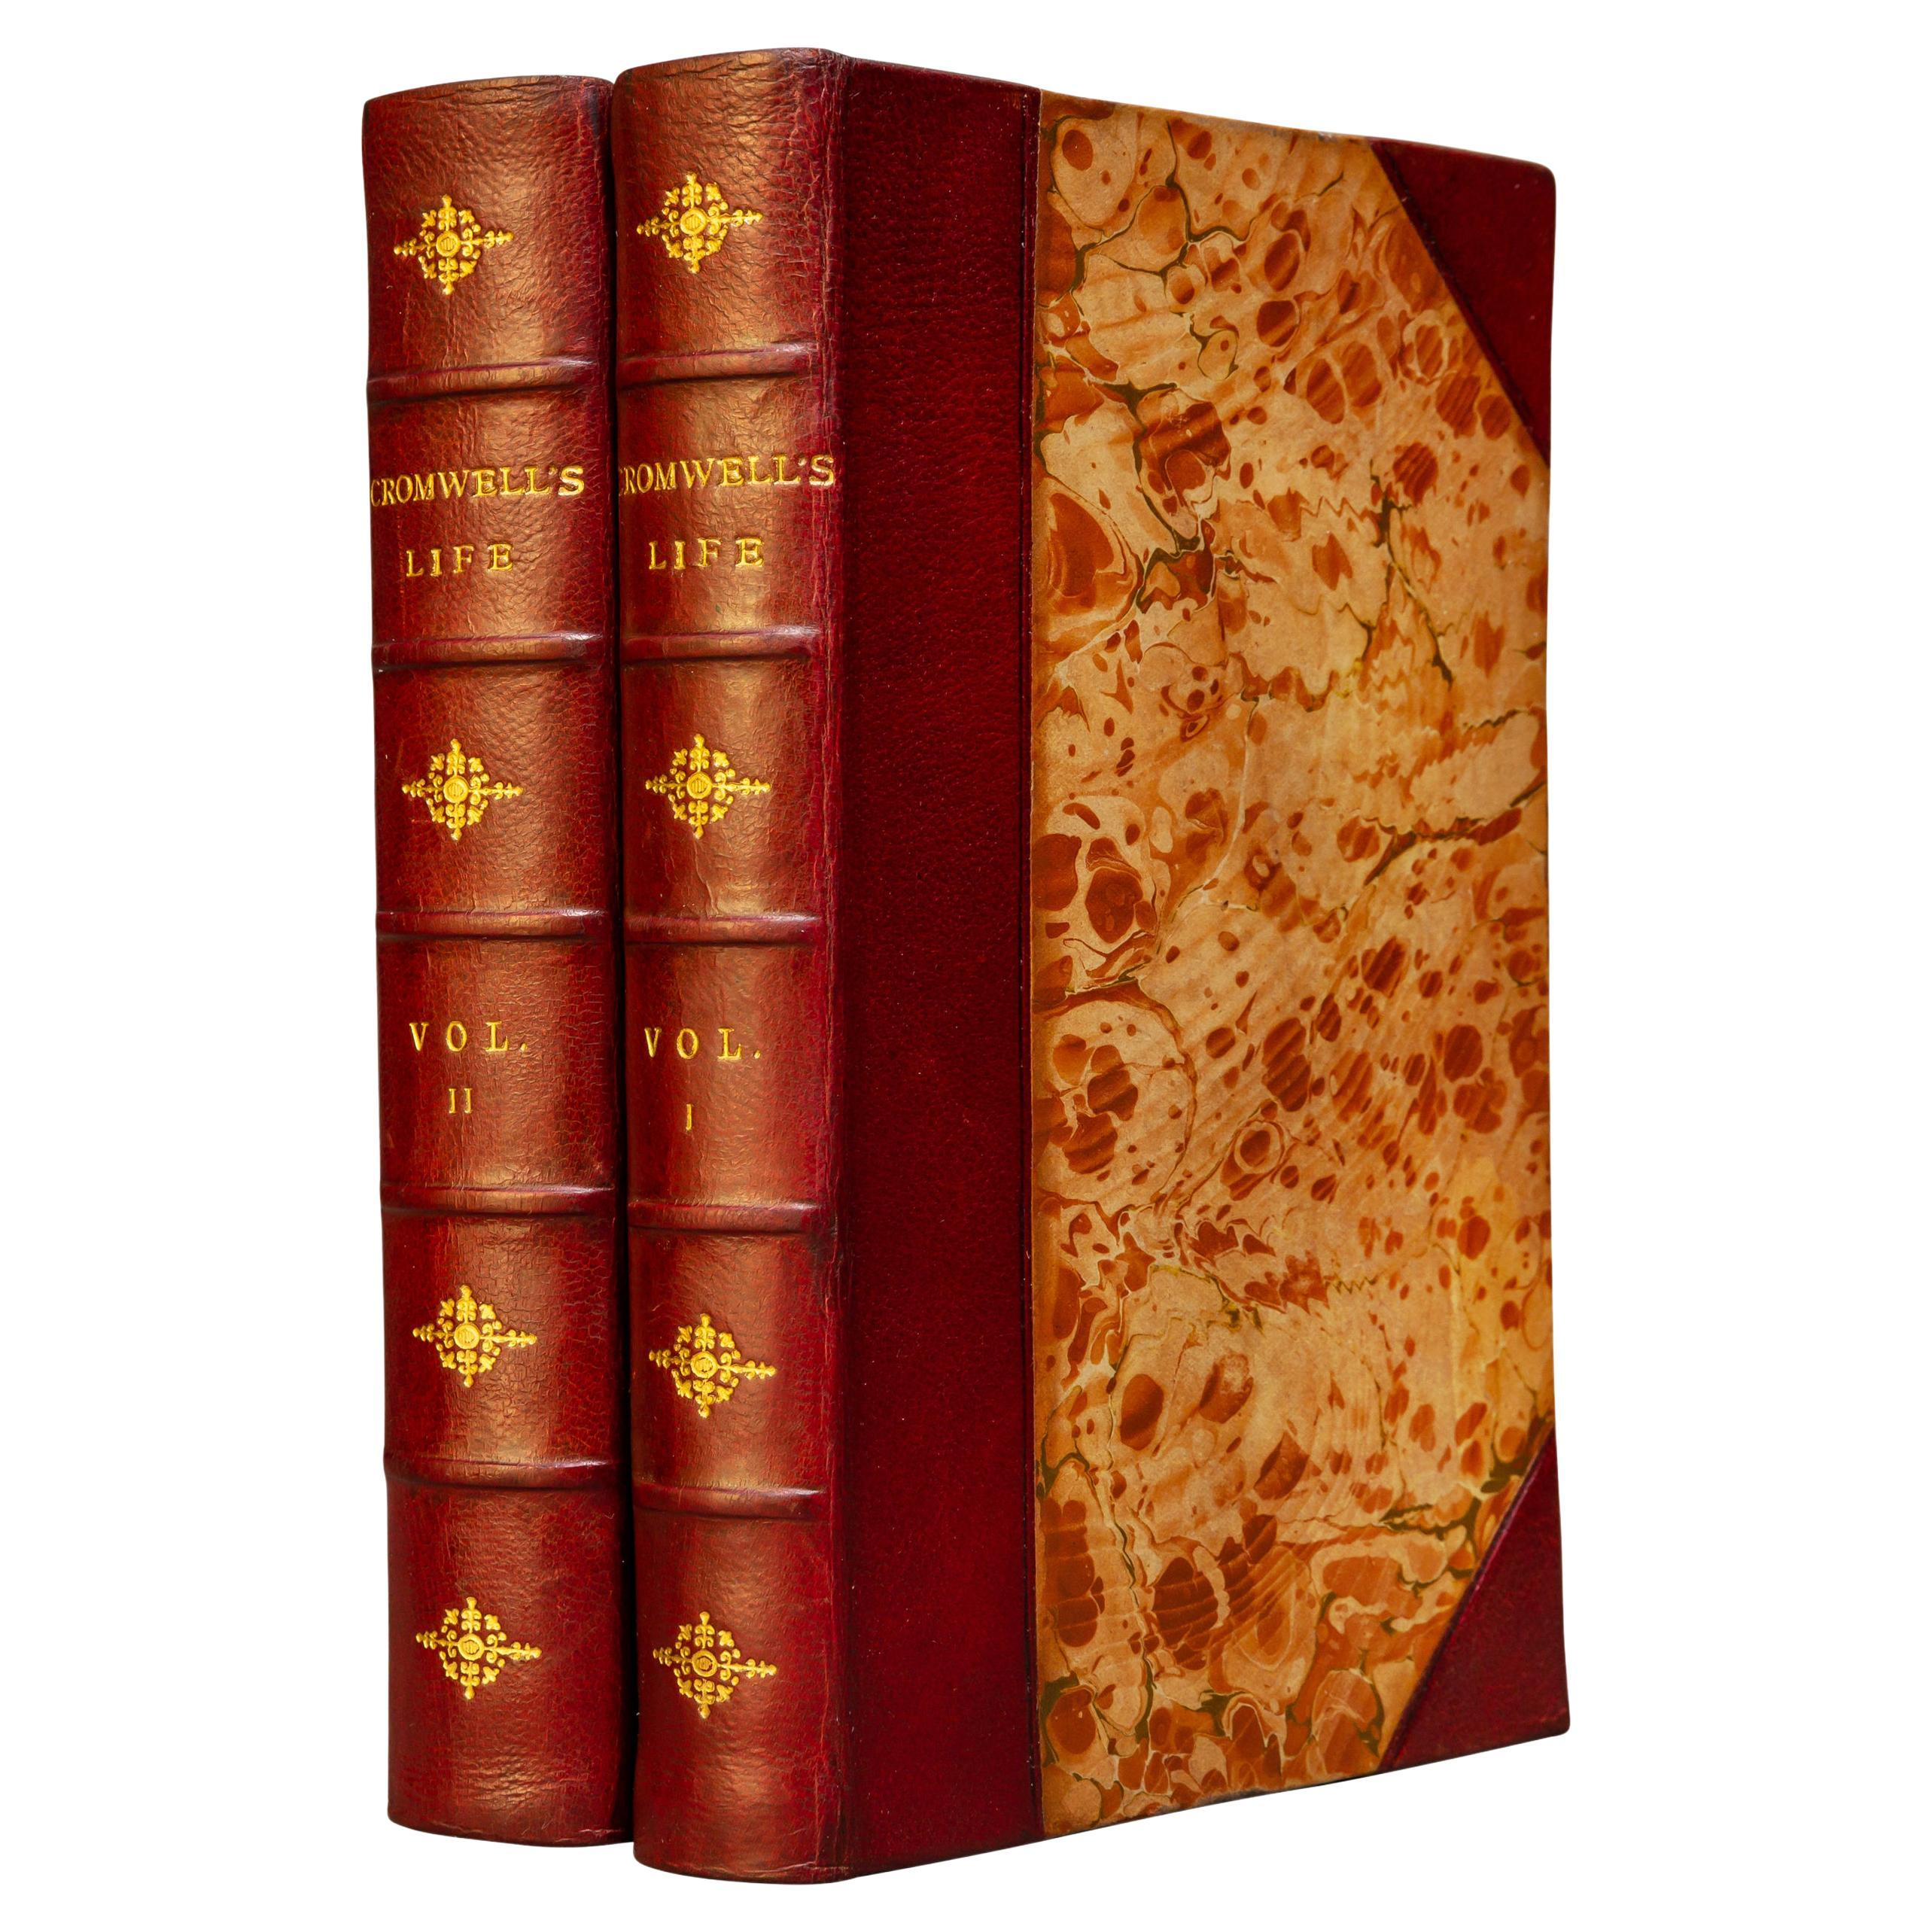 'Book Sets' 2 Volumes, Oliver Cromwell, The Memoirs